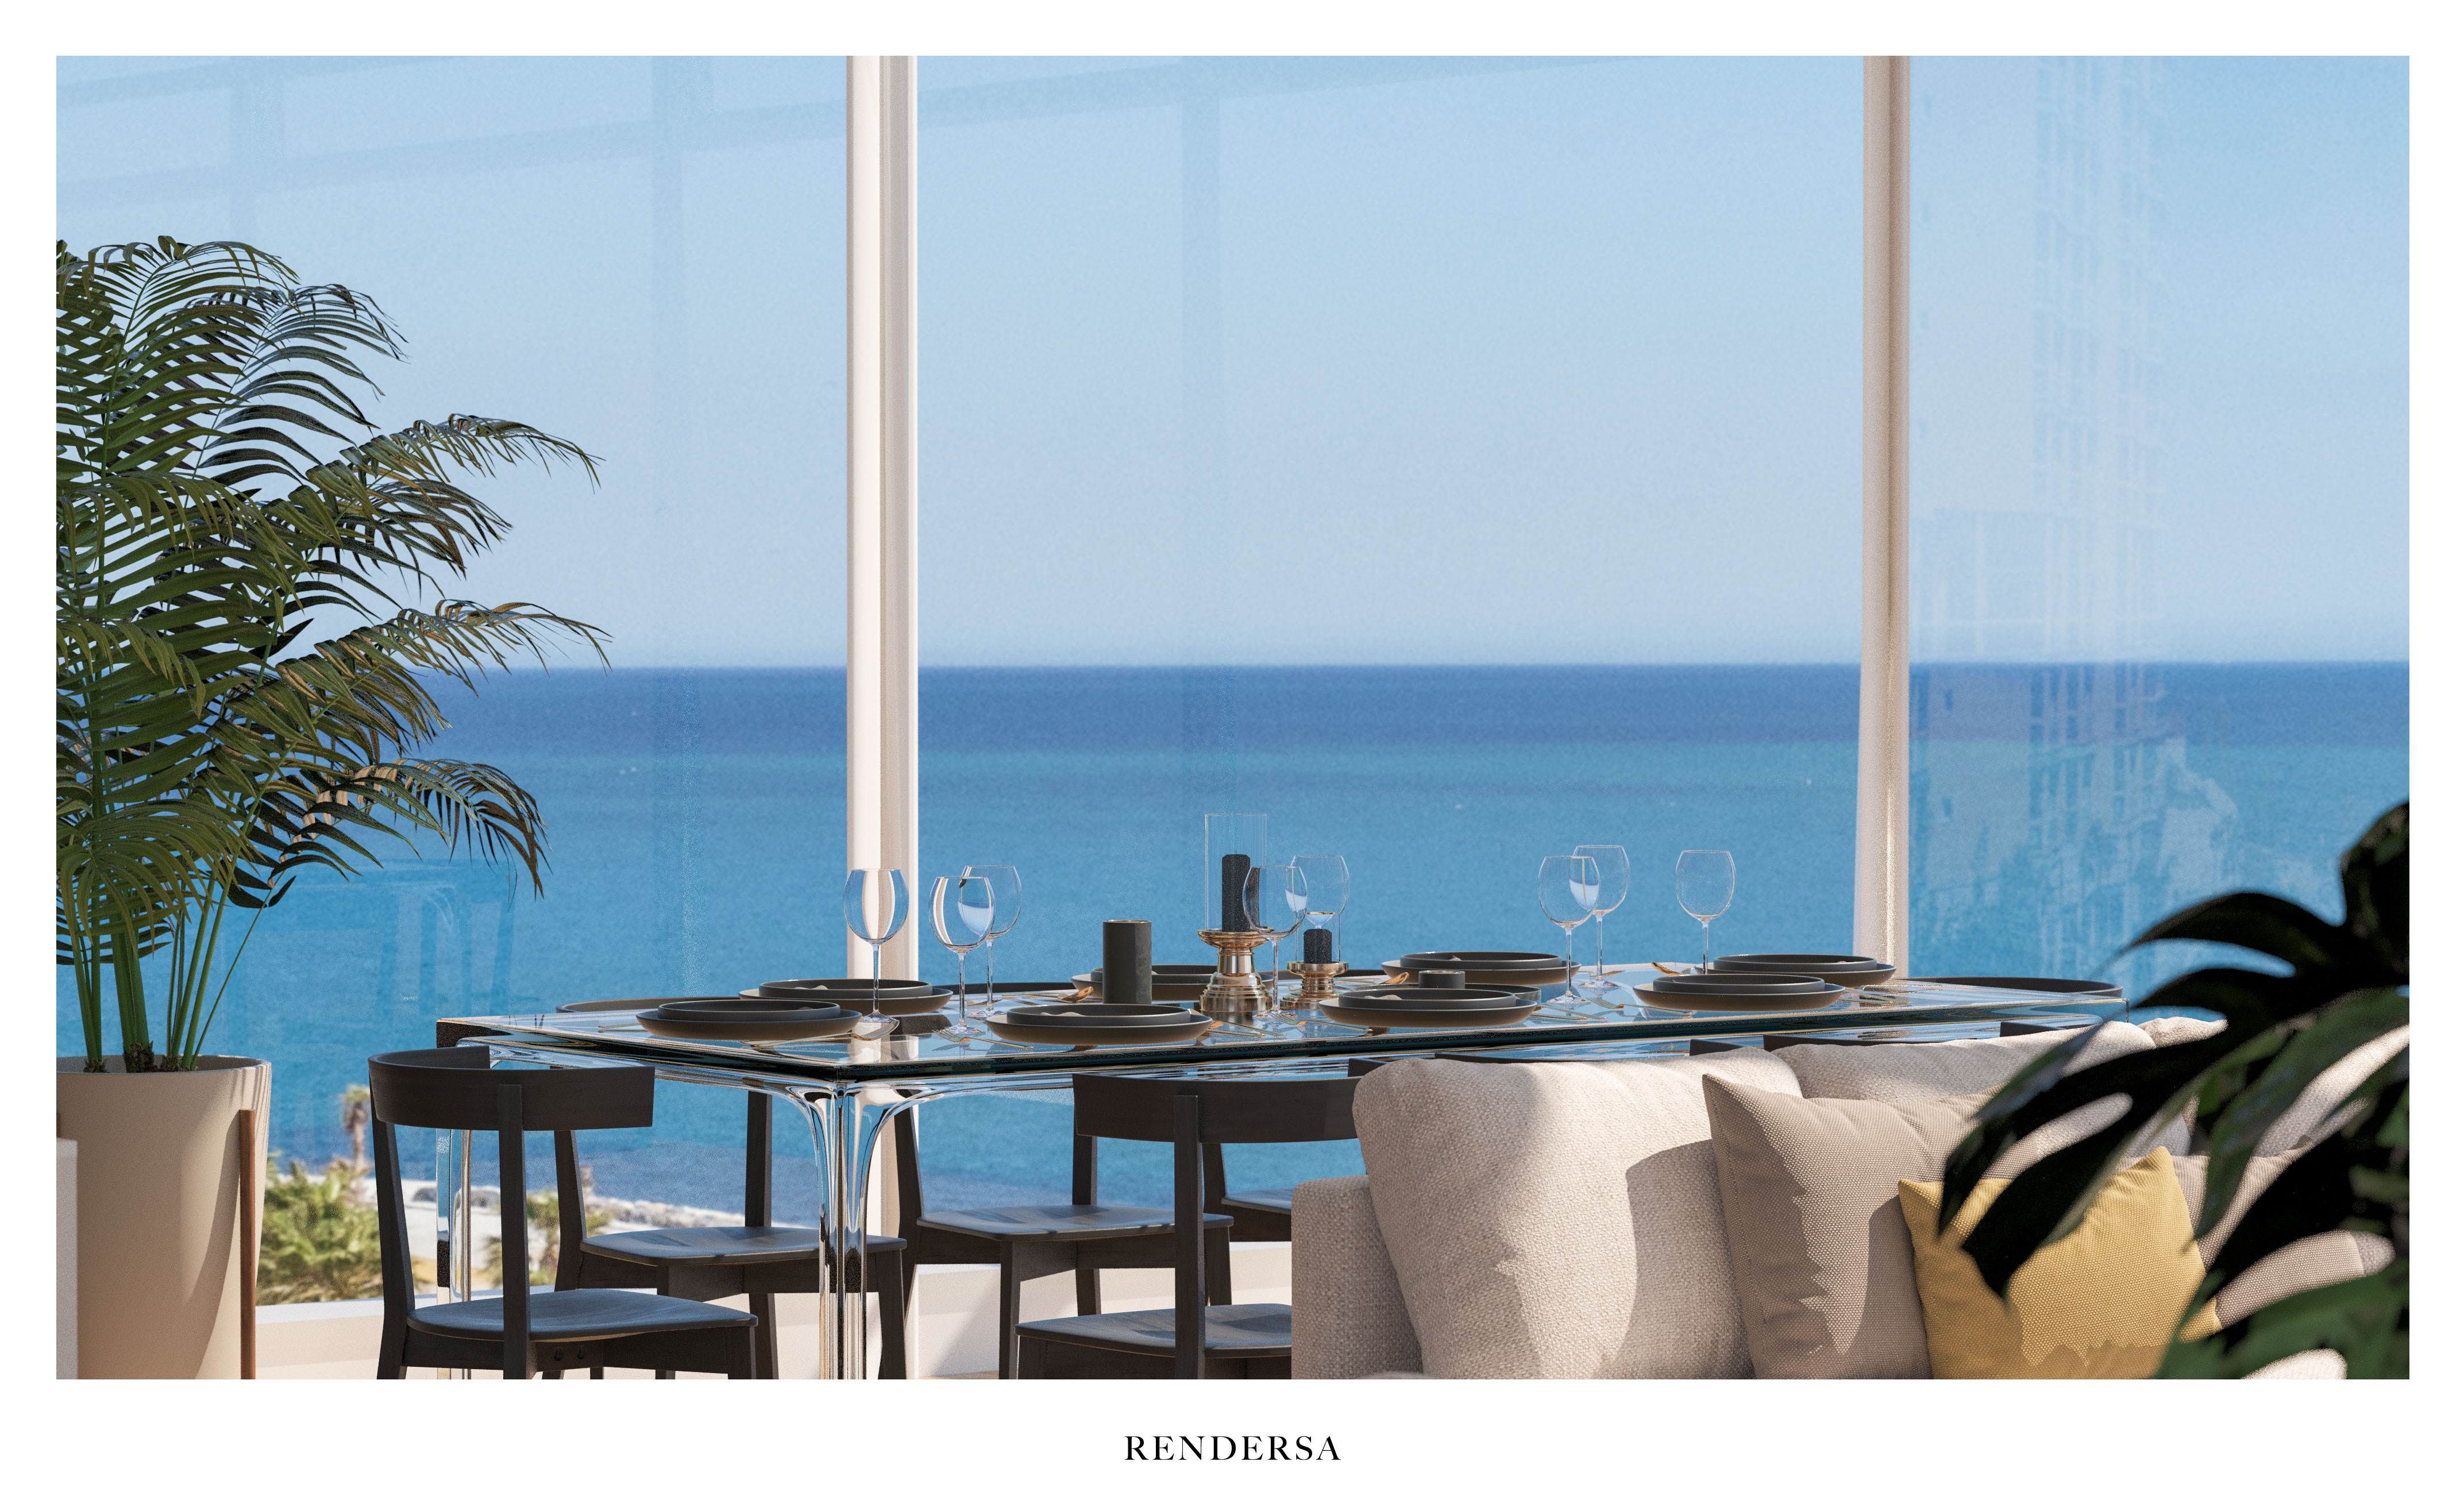 3D Architectural Rendering Dining Room South Beach, Miami Beach